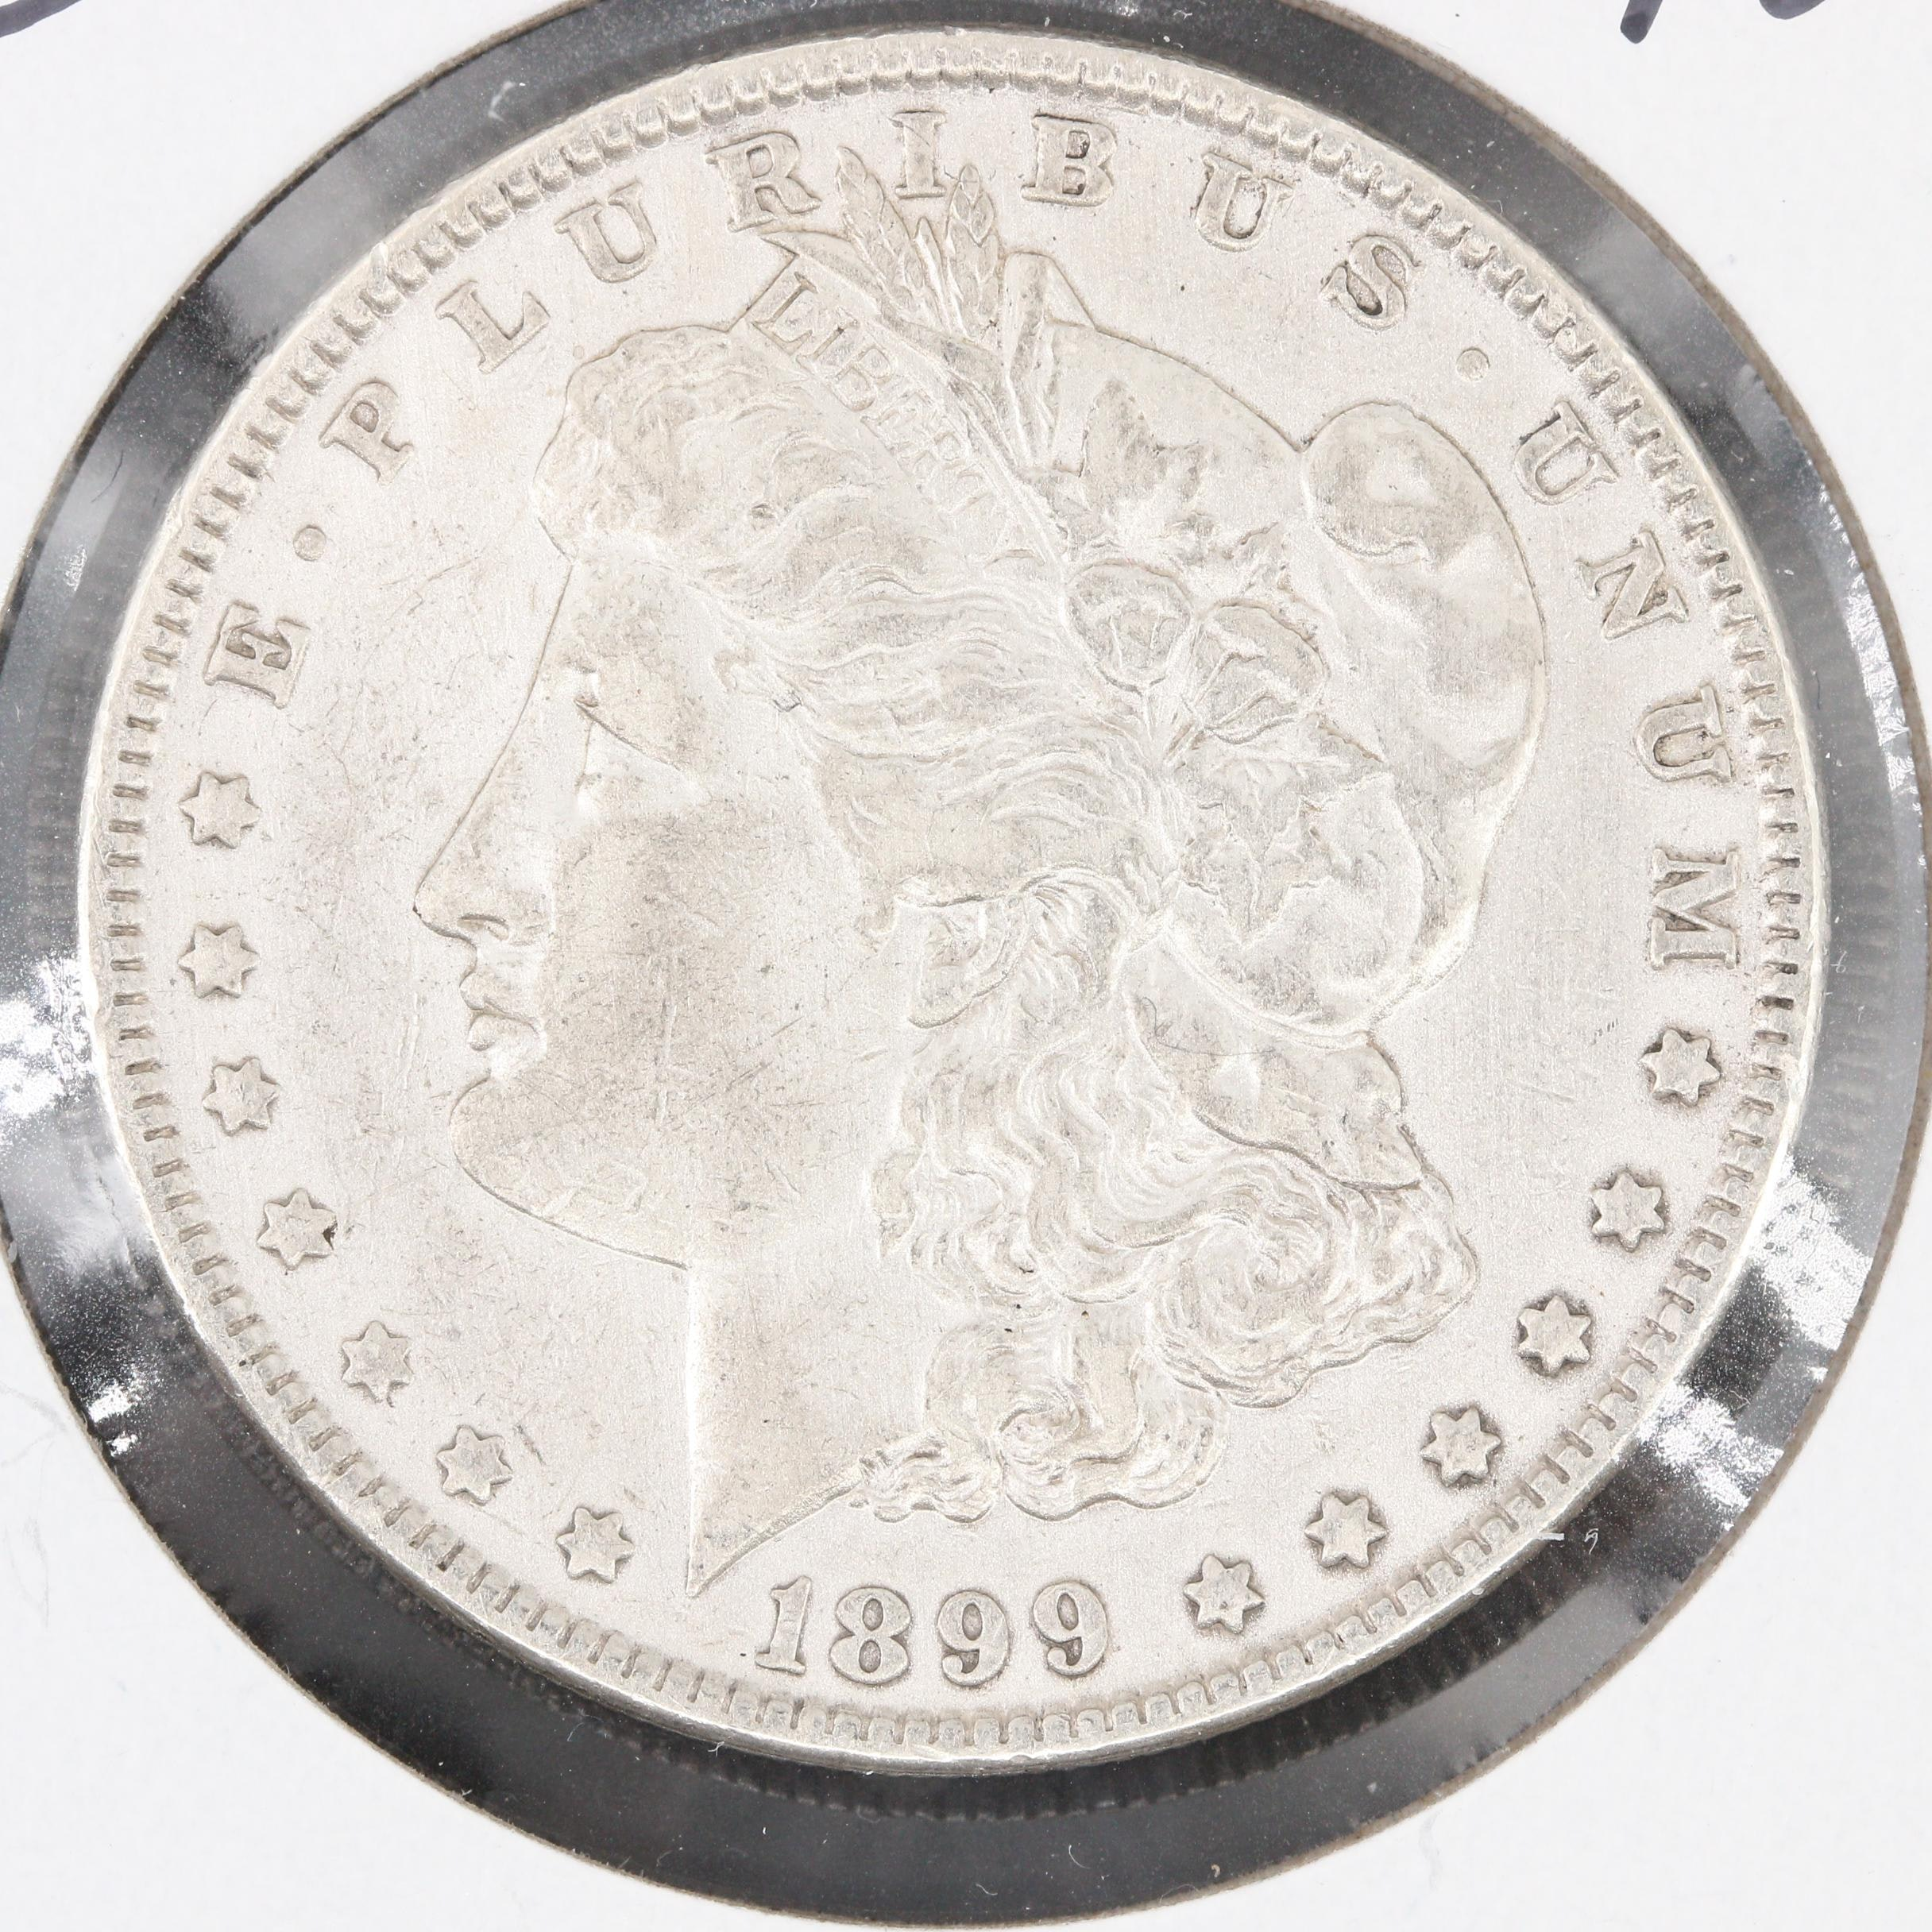 Low Mintage 1899 Silver Morgan Dollar